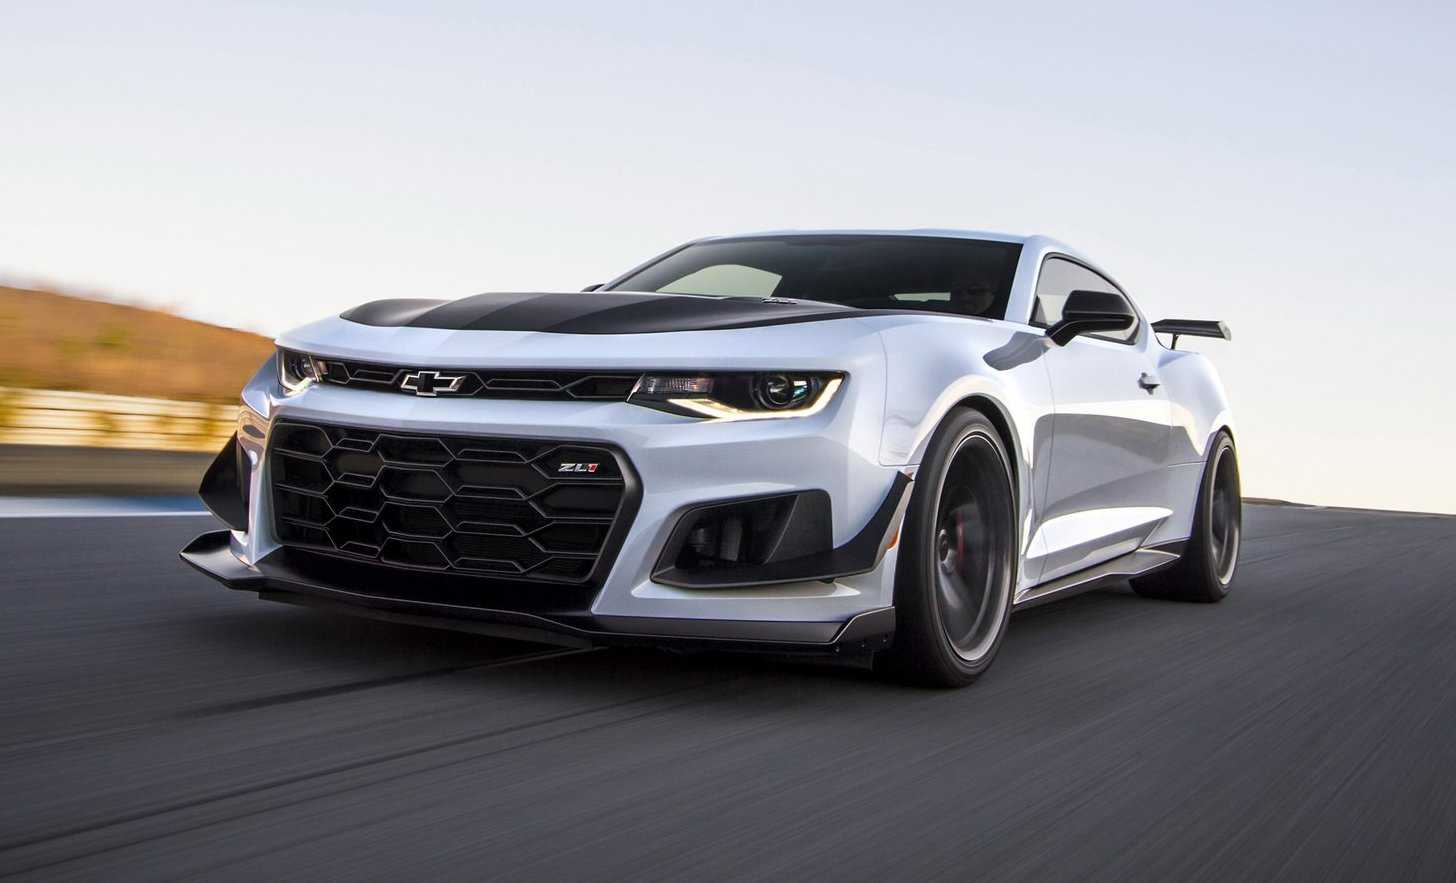 Chevrolet Camaro ZL1 1LE 10 speed automatic